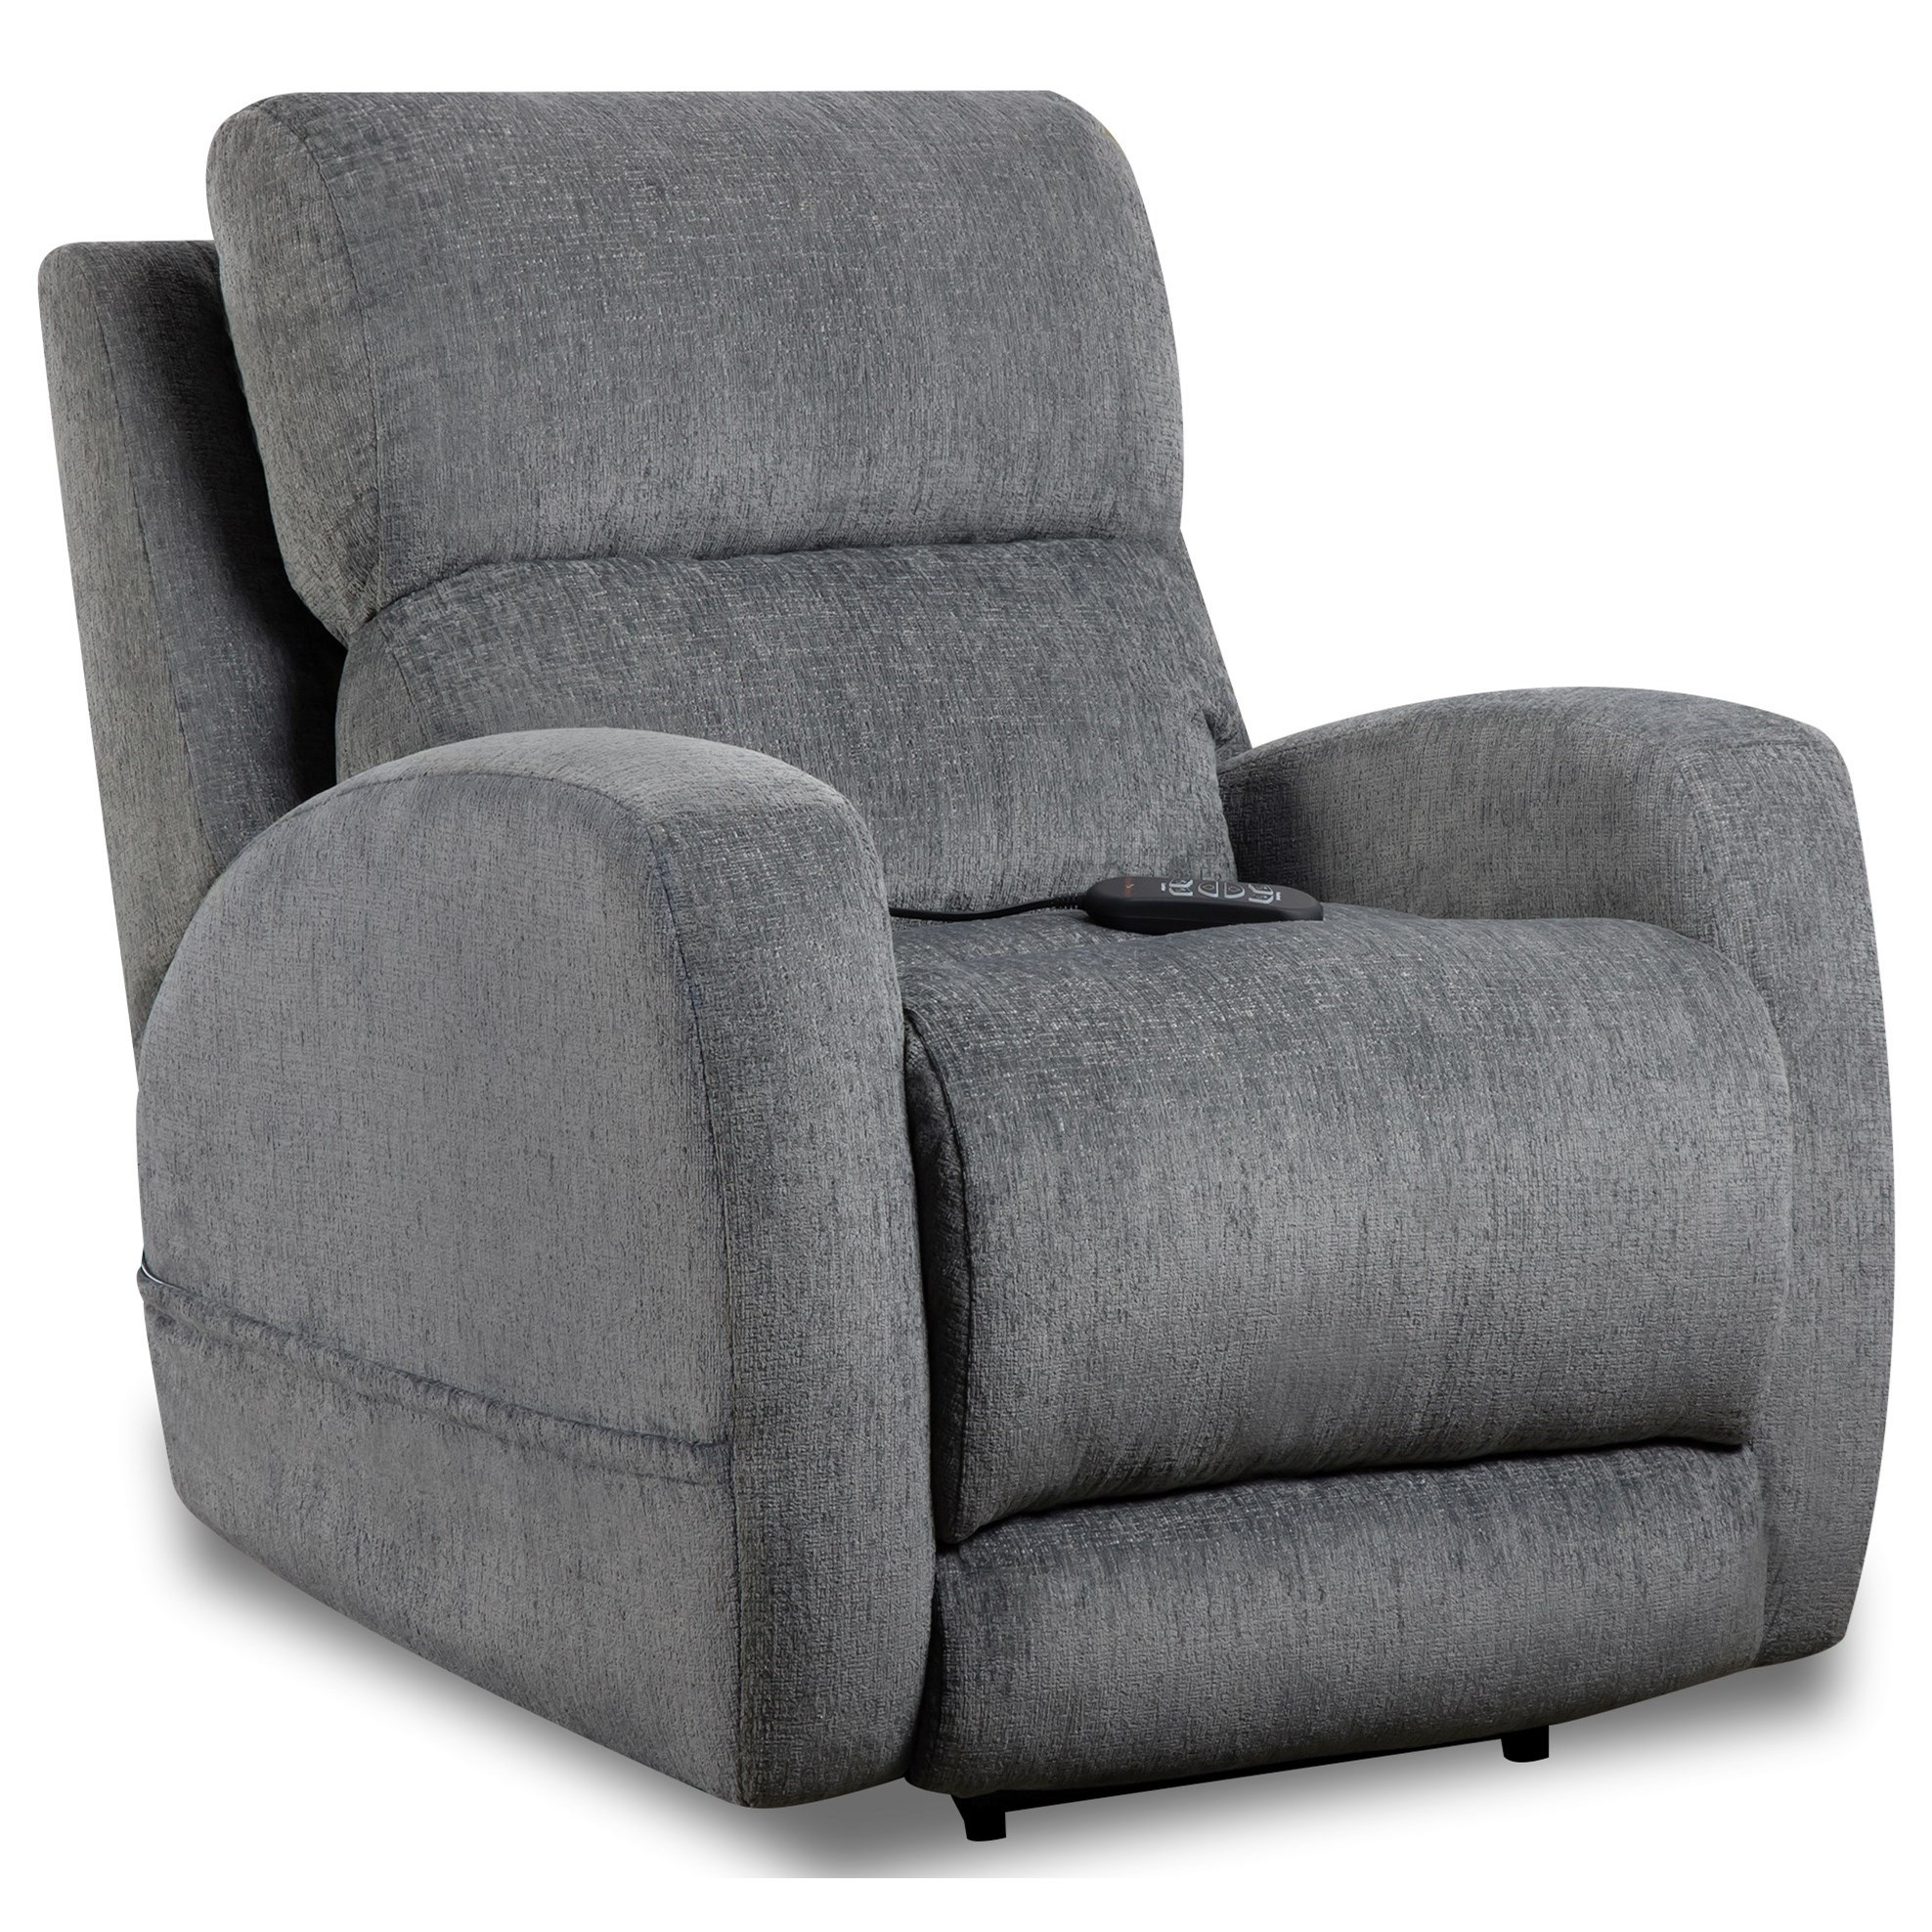 Sterling Power Wall-Saver Recliner by HomeStretch at Darvin Furniture